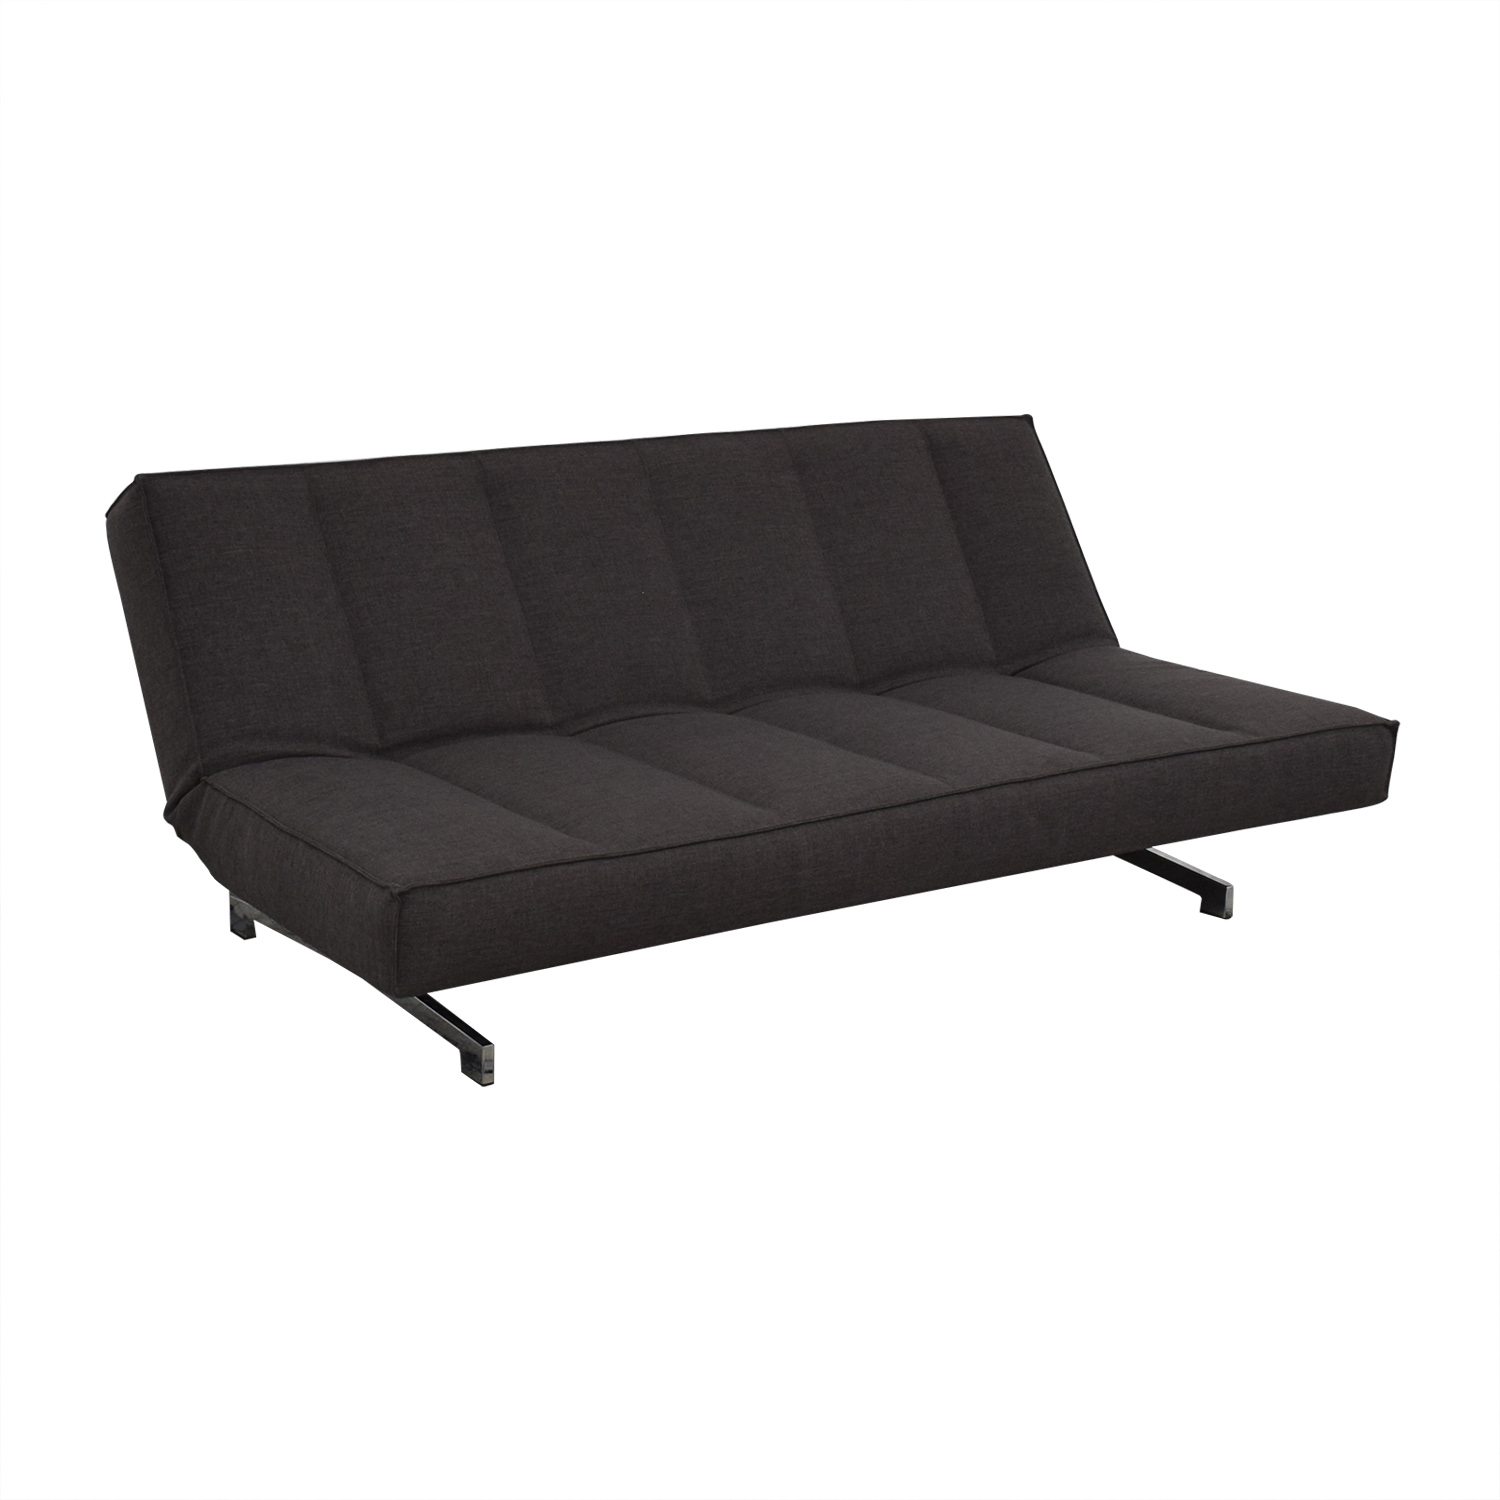 CB2 CB2 Flex Gravel Convertible Sofa nyc